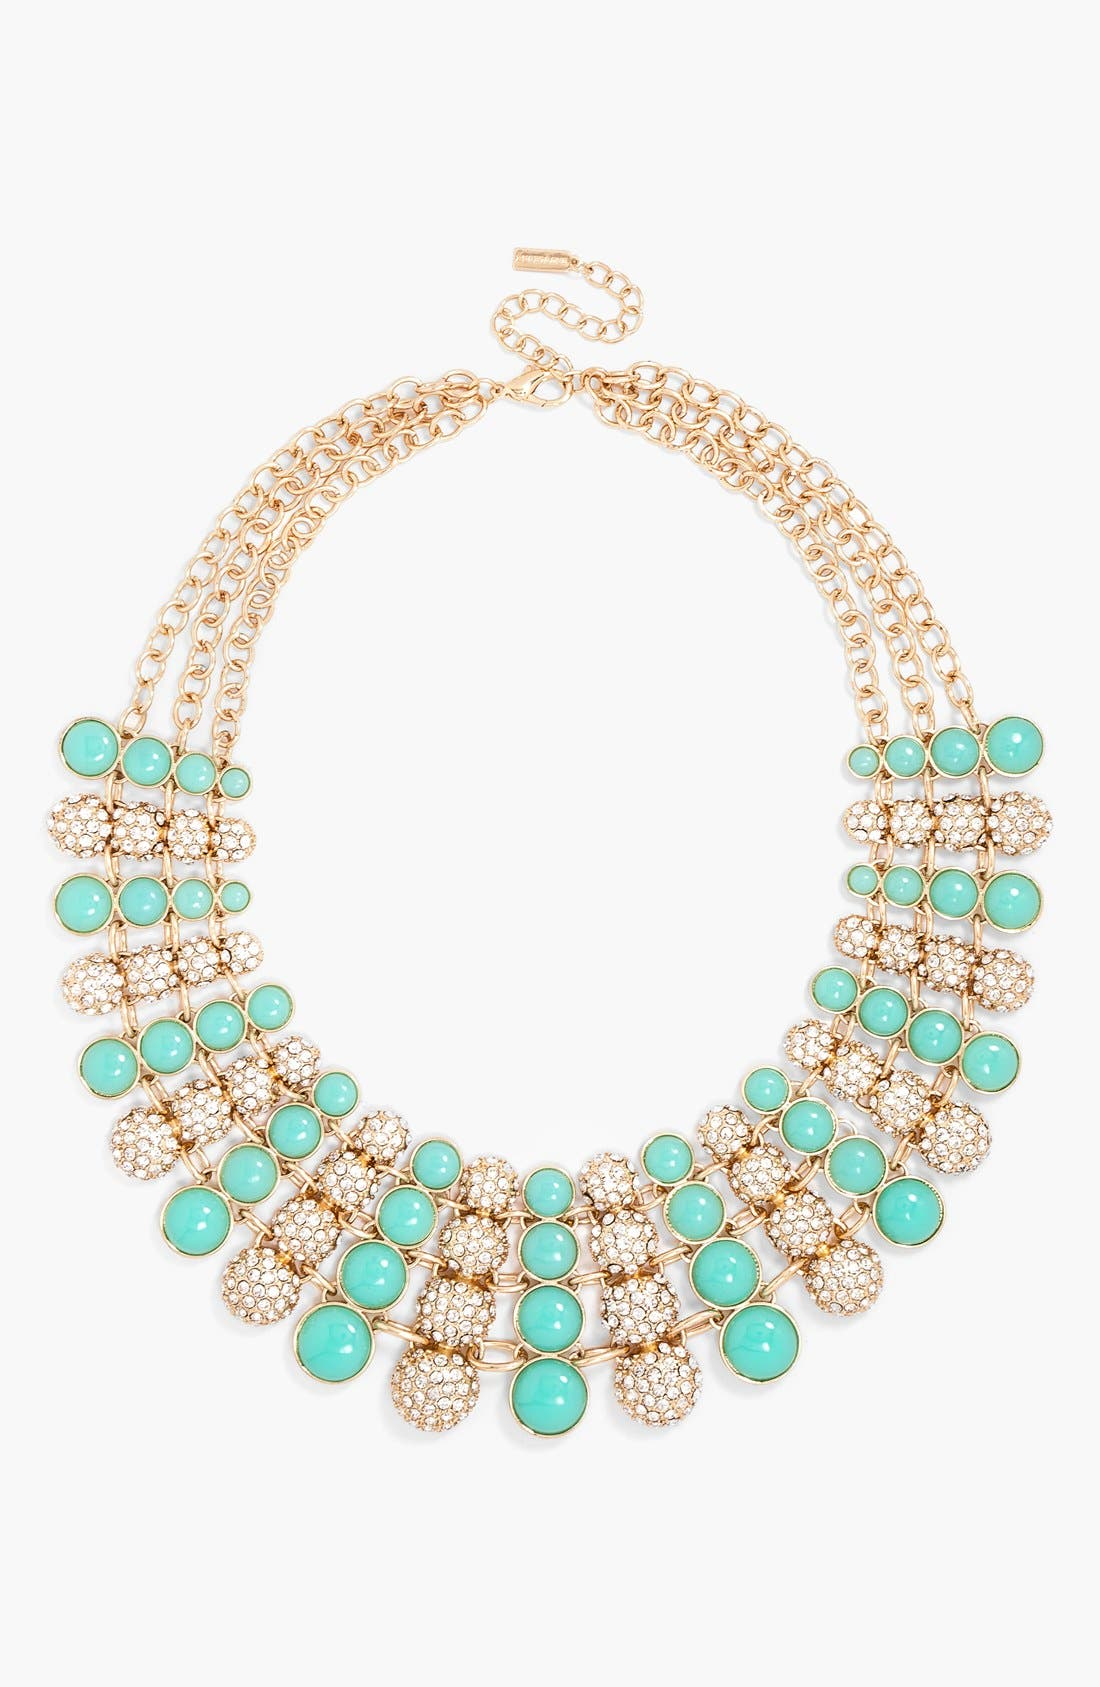 Main Image - BaubleBar 'Gold Nonpareil' Necklace